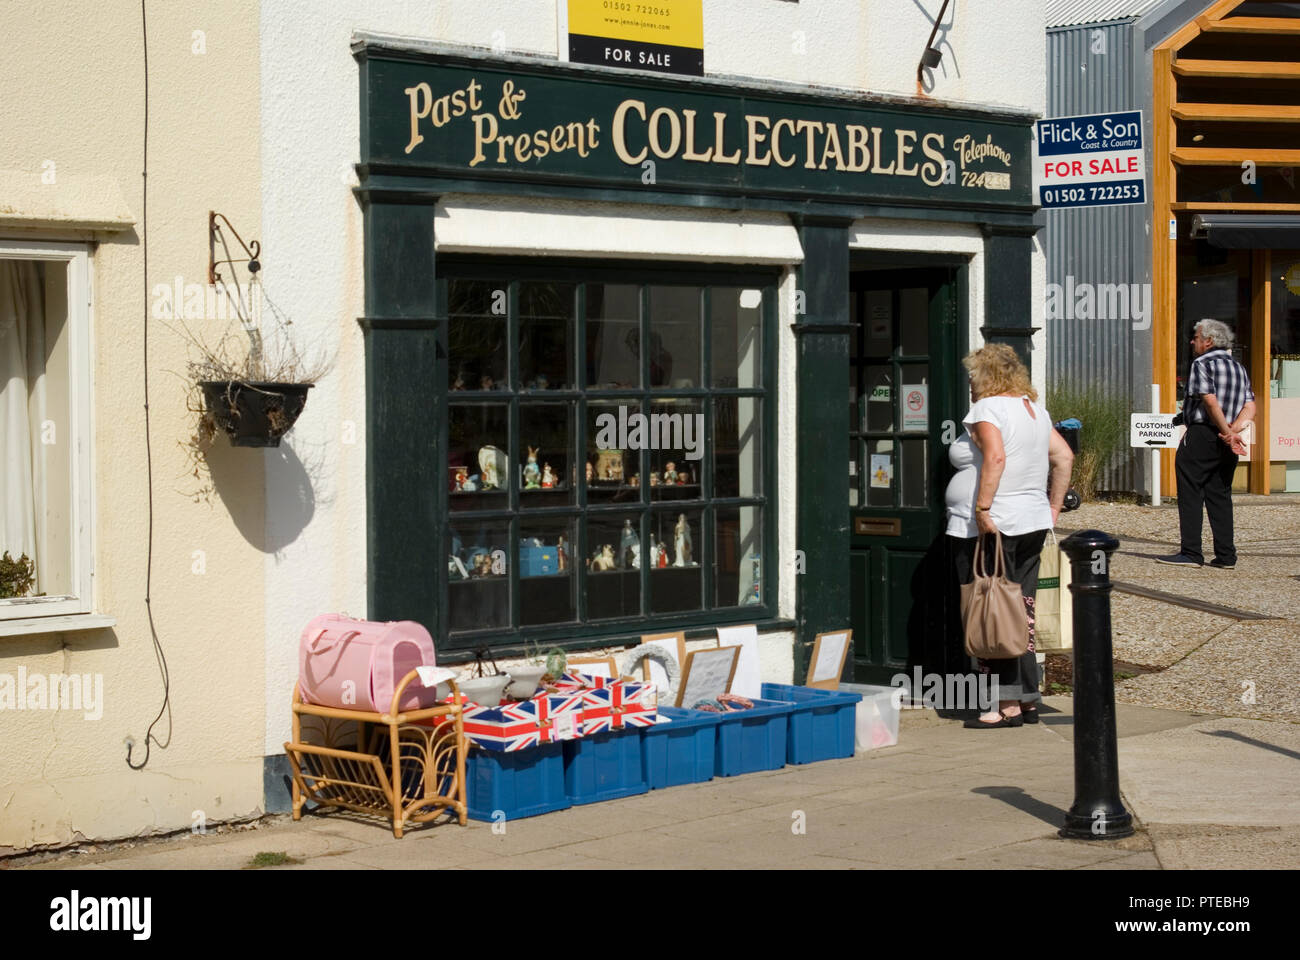 Past & Present Collectables, Southwold - Stock Image